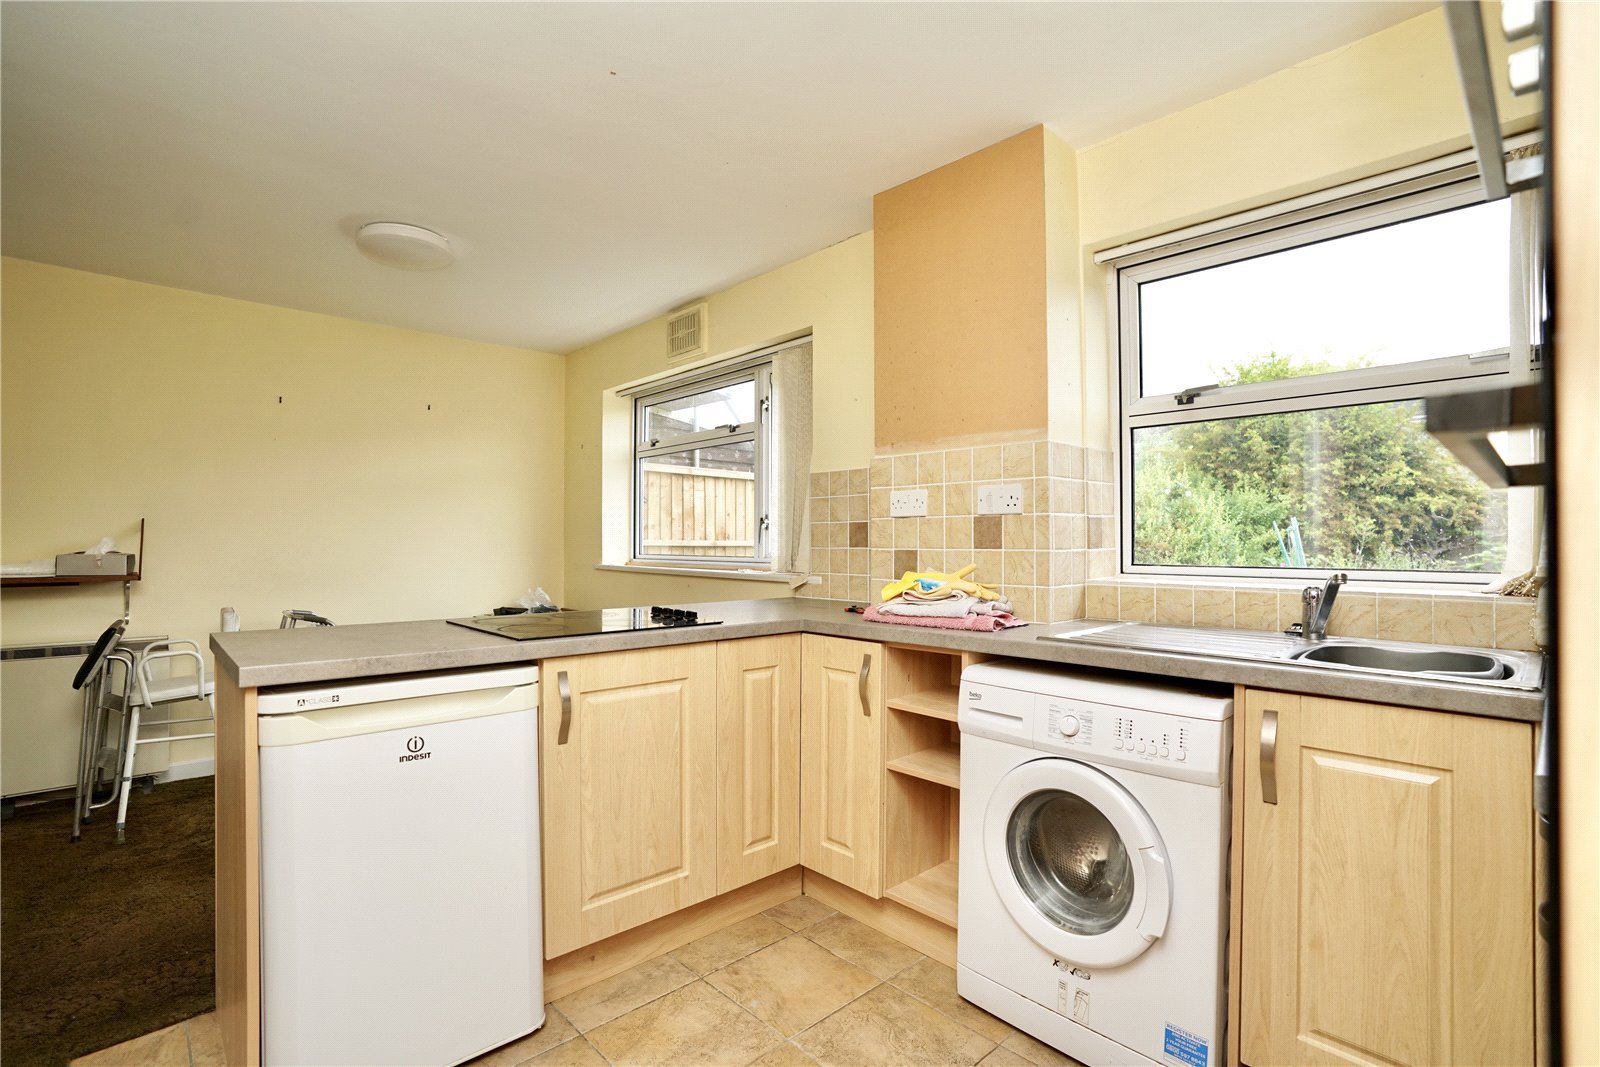 3 bed house for sale in Kenilworth Close, Eaton Socon 2